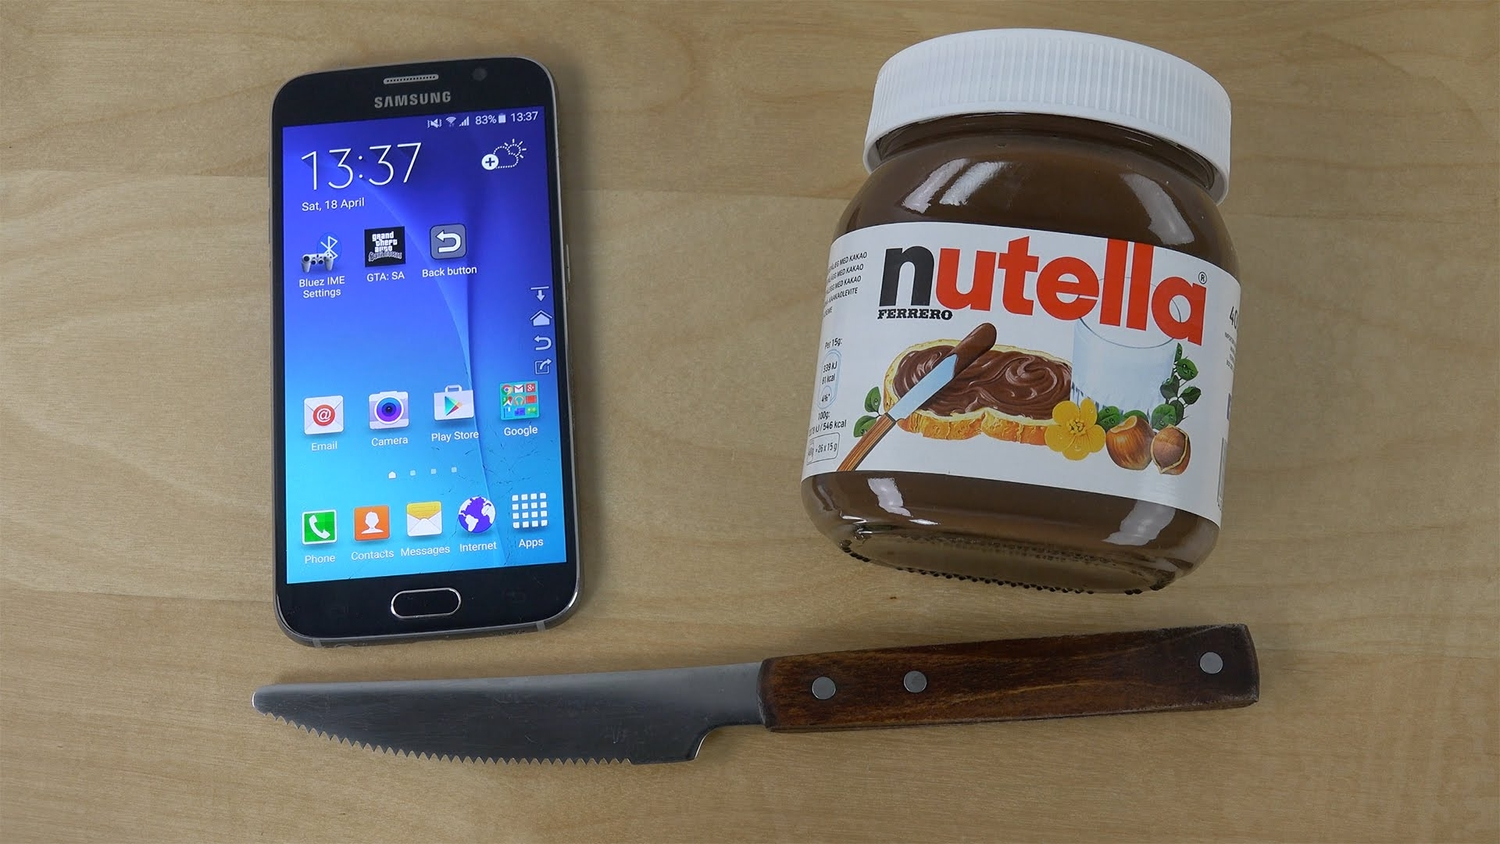 Spread Nutella On Phone.jpg